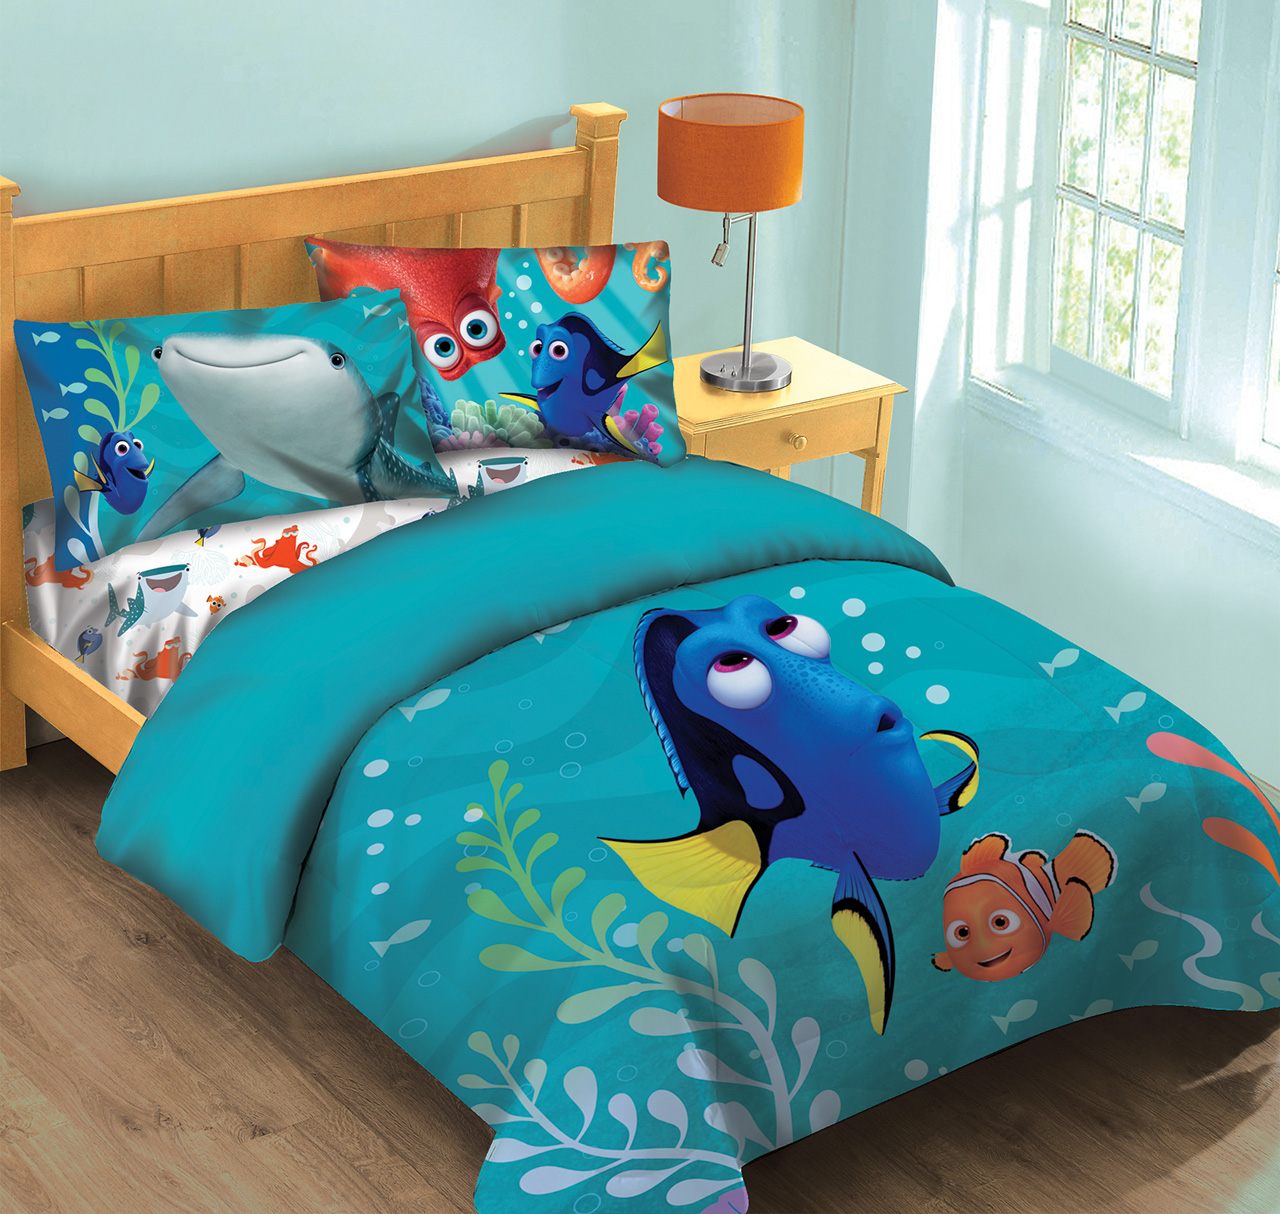 babies r us sofa bed recliner leather sofas uk disney finding dory fish finder comforter set w fitted sheet